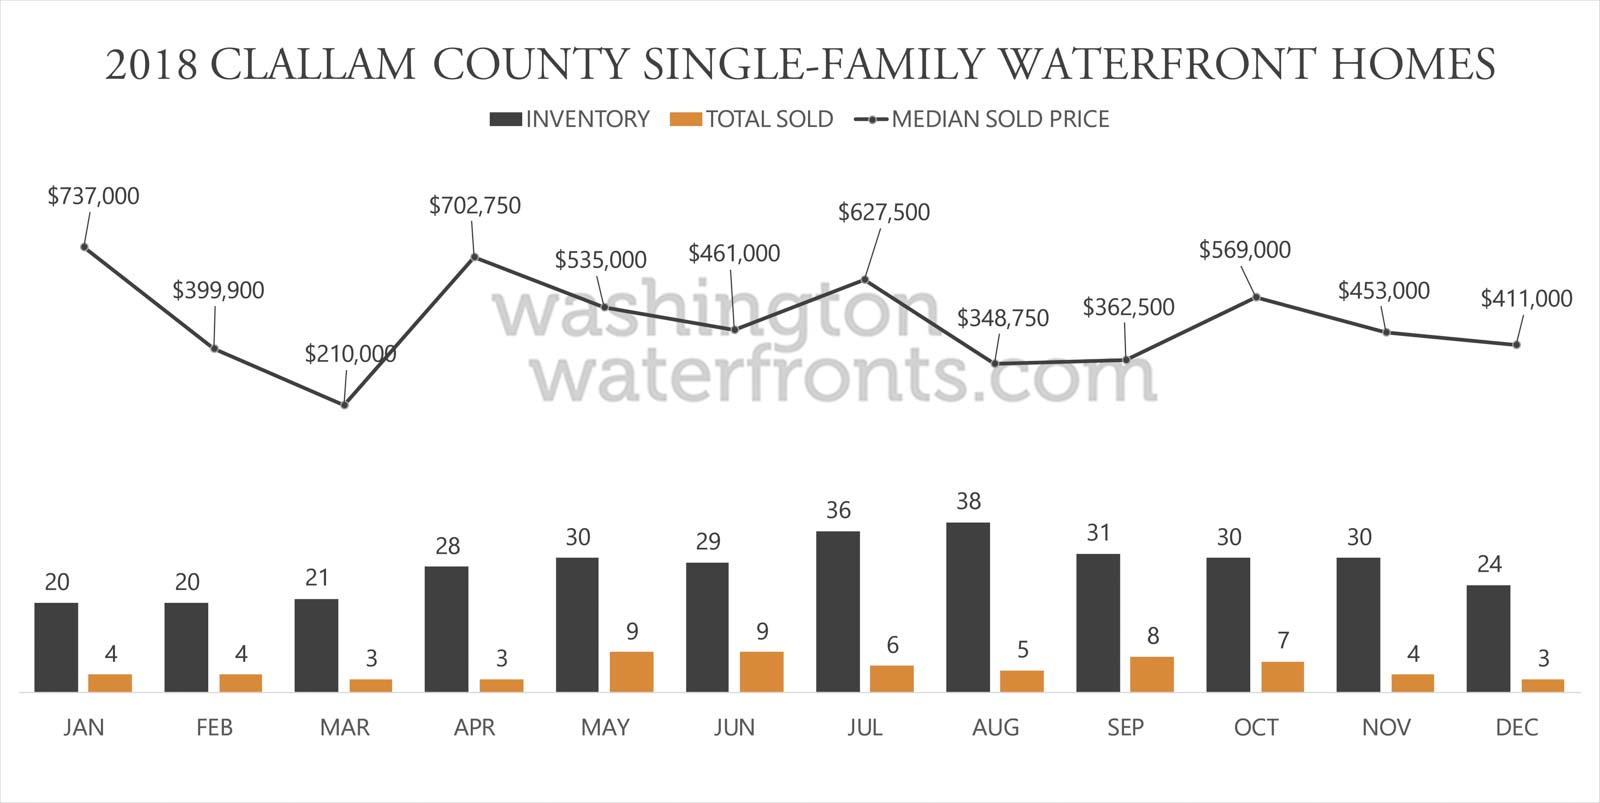 Clallam County Waterfront Inventory